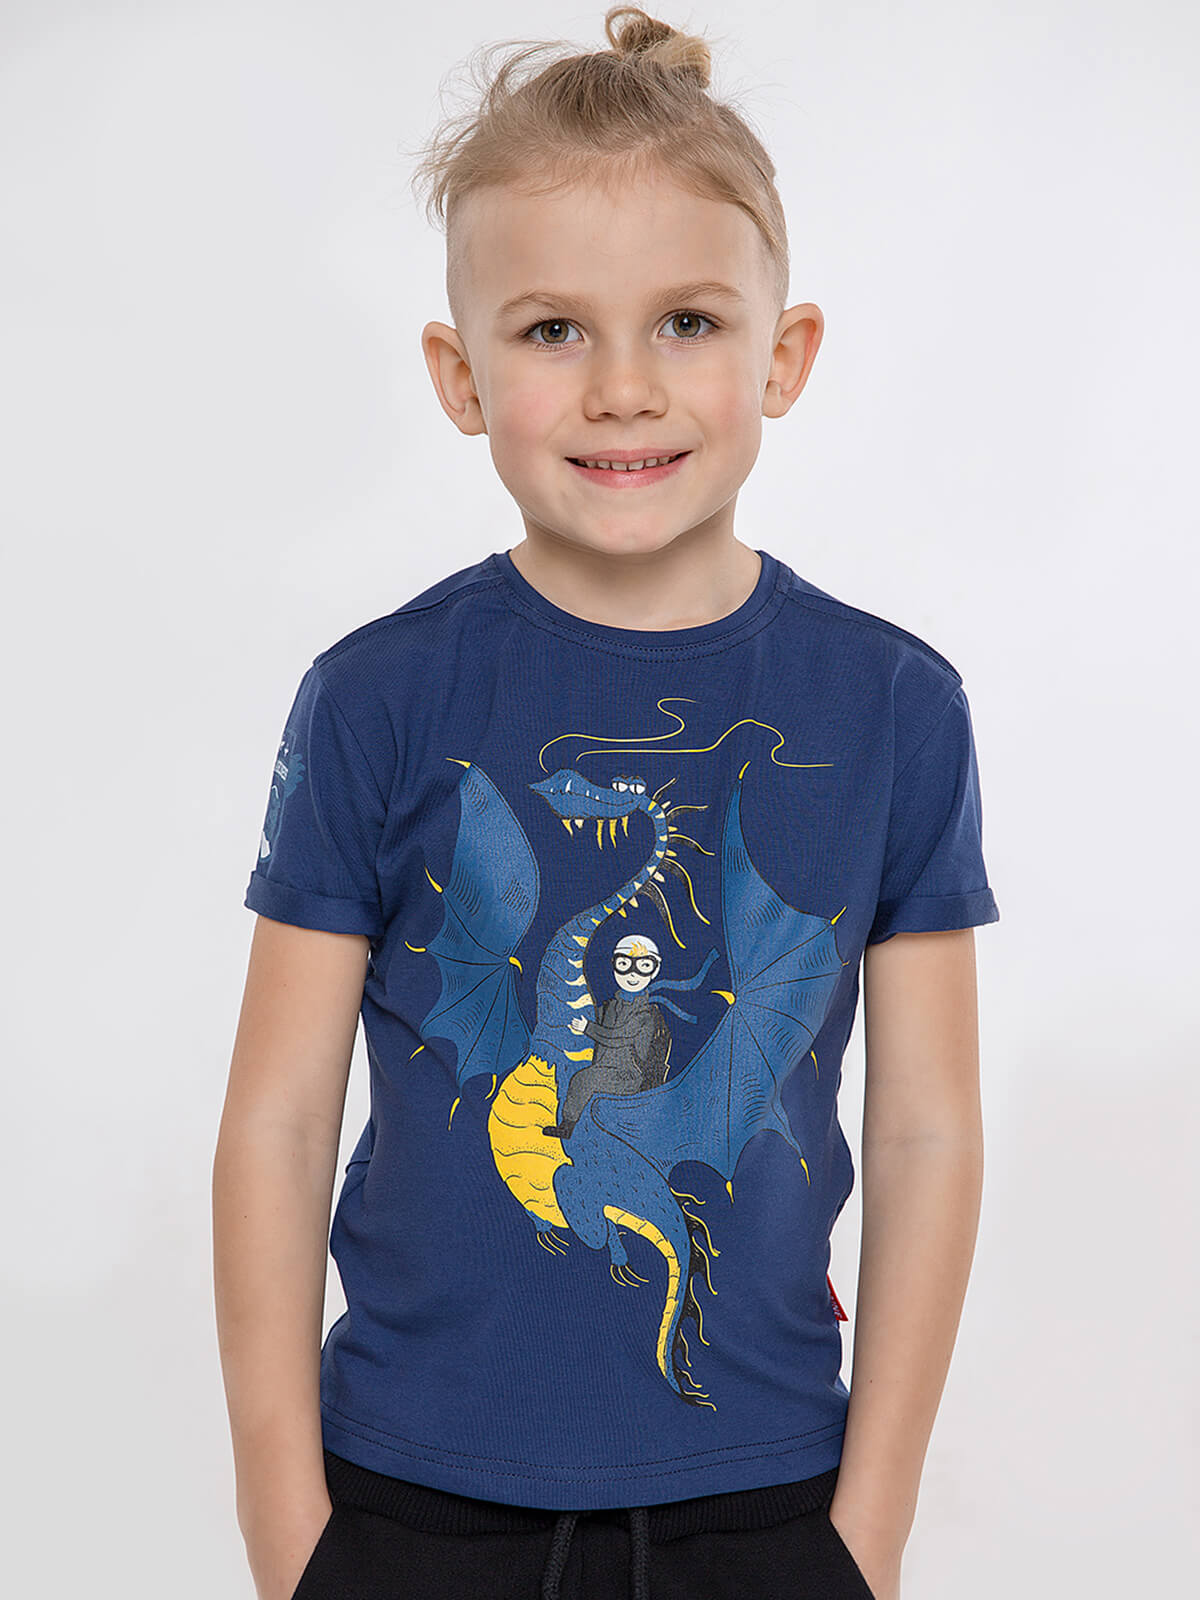 Kids T-Shirt Dragon. Color navy blue. T-shirt: unisex, well suited for both boys and girls.